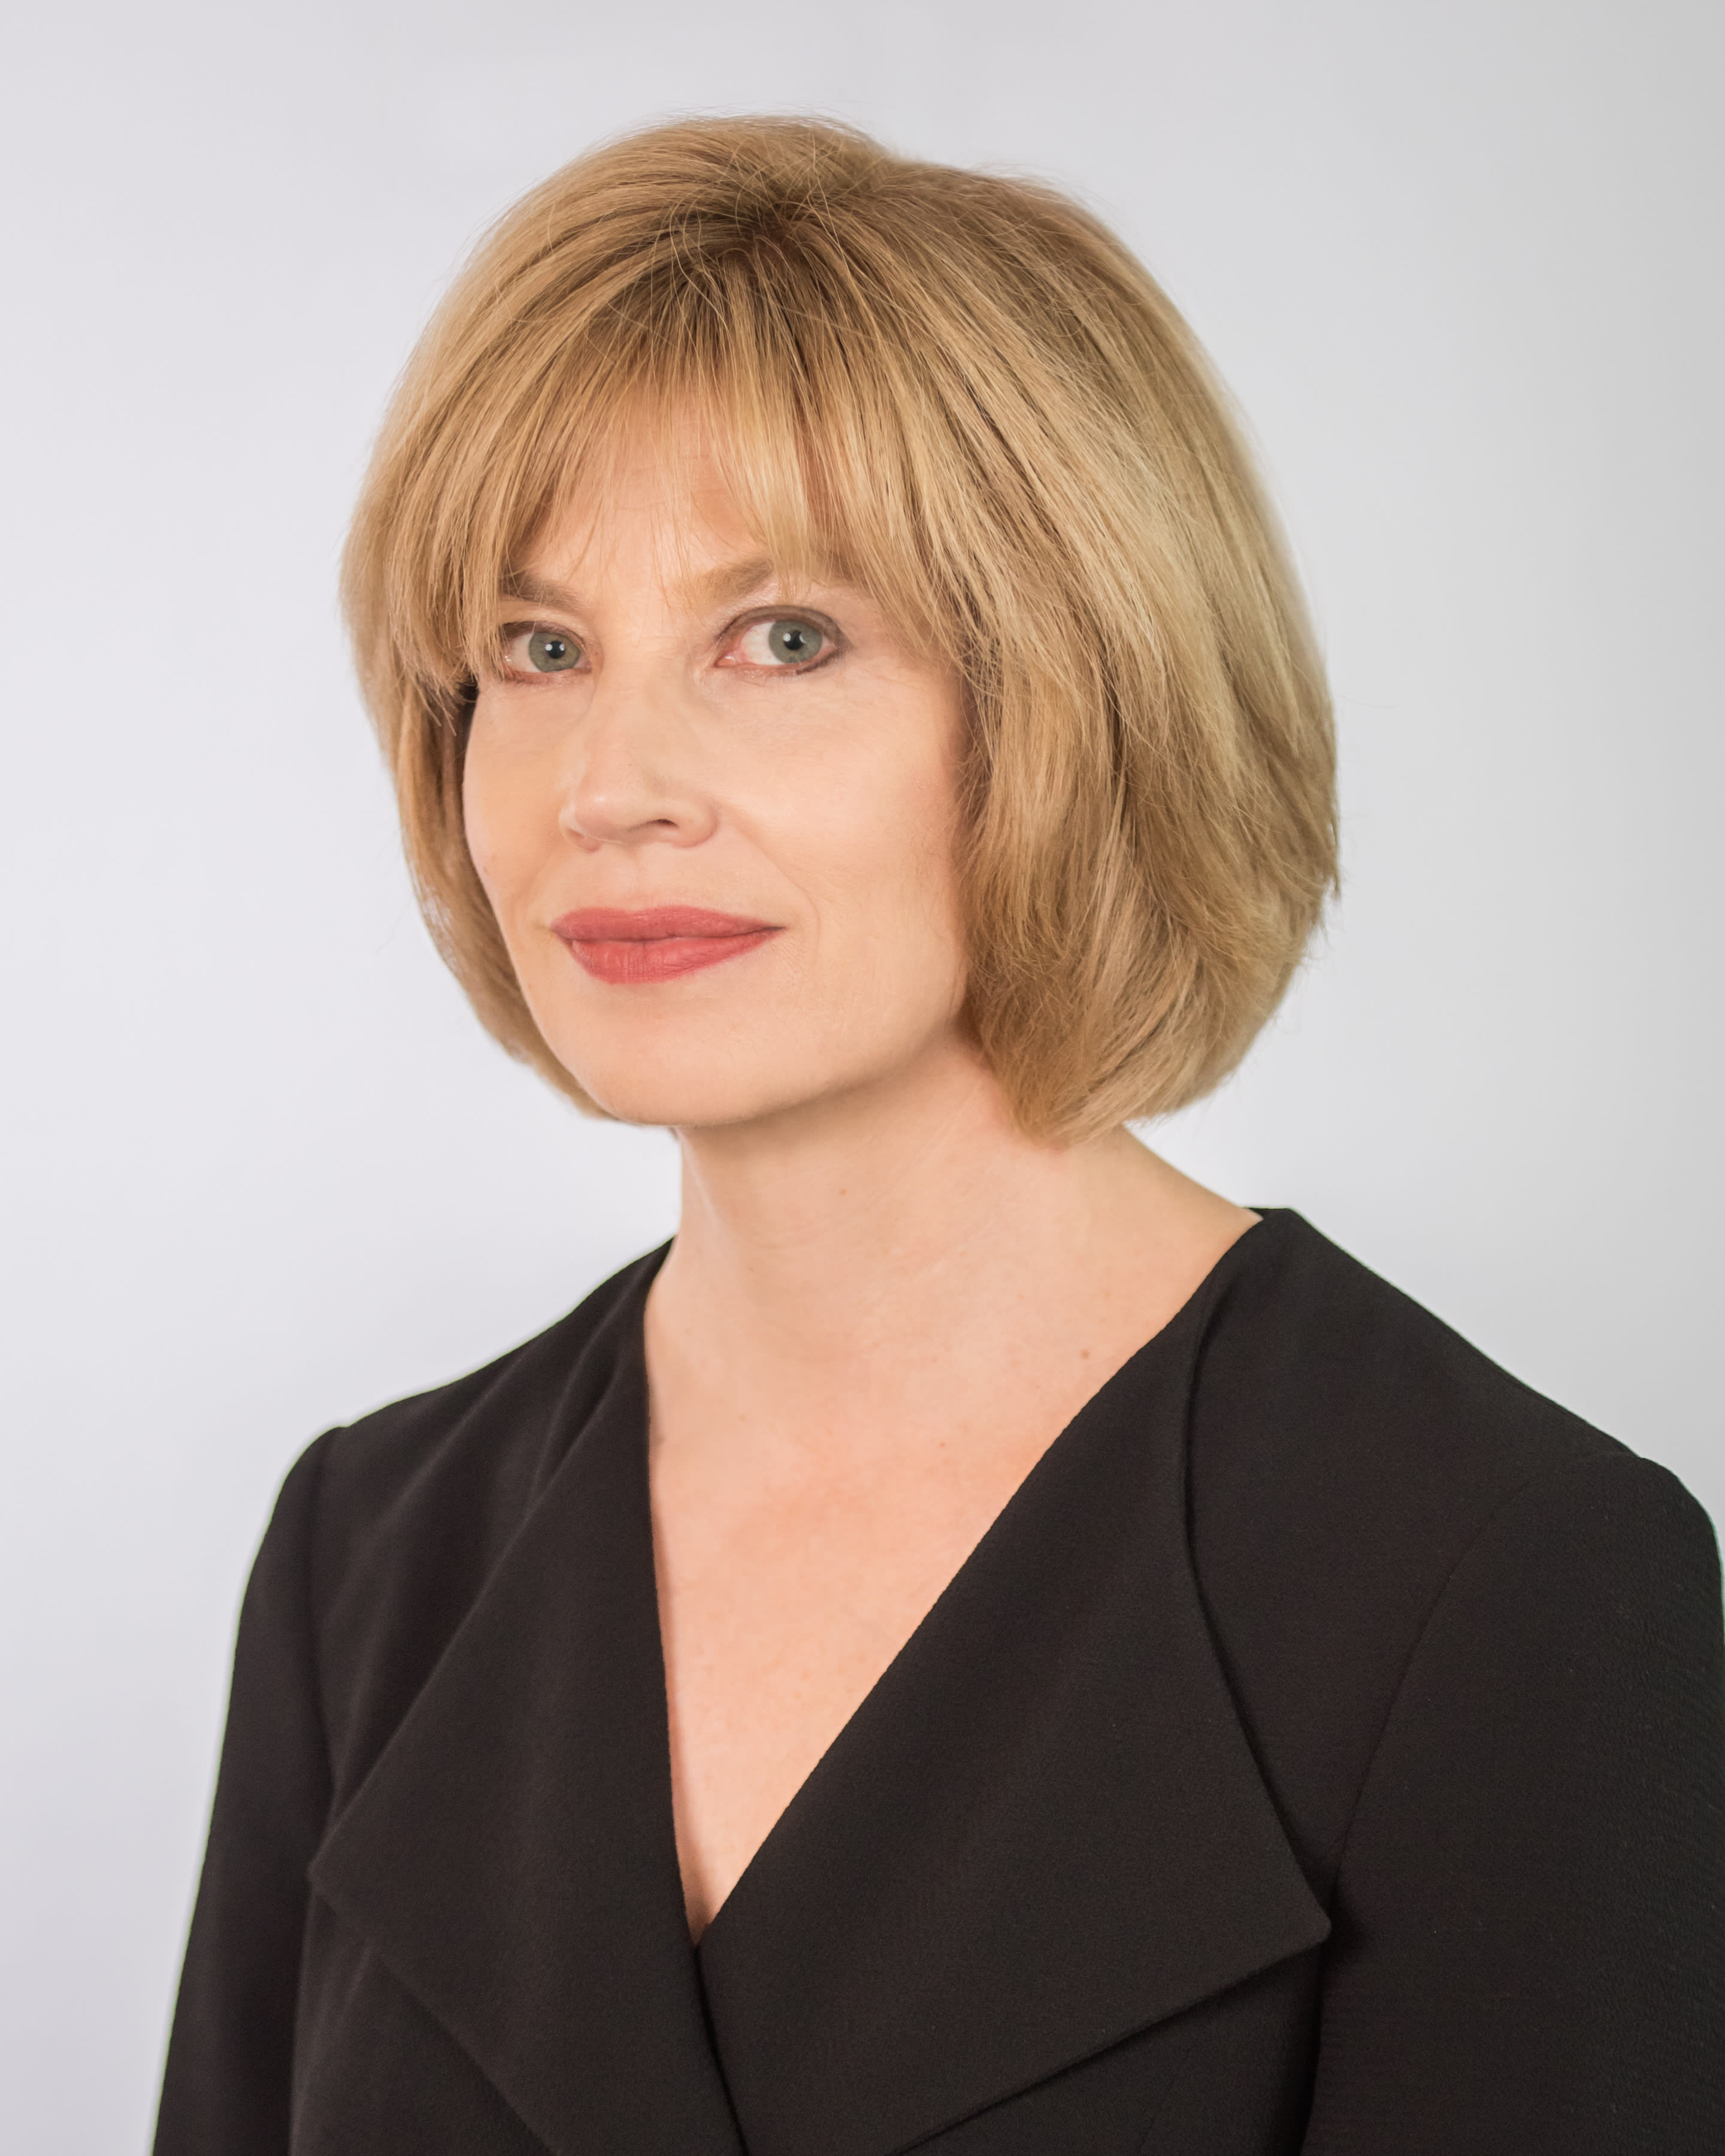 THE JEWISH MUSEUM APPOINTS DARSIE ALEXANDER CHIEF CURATOR